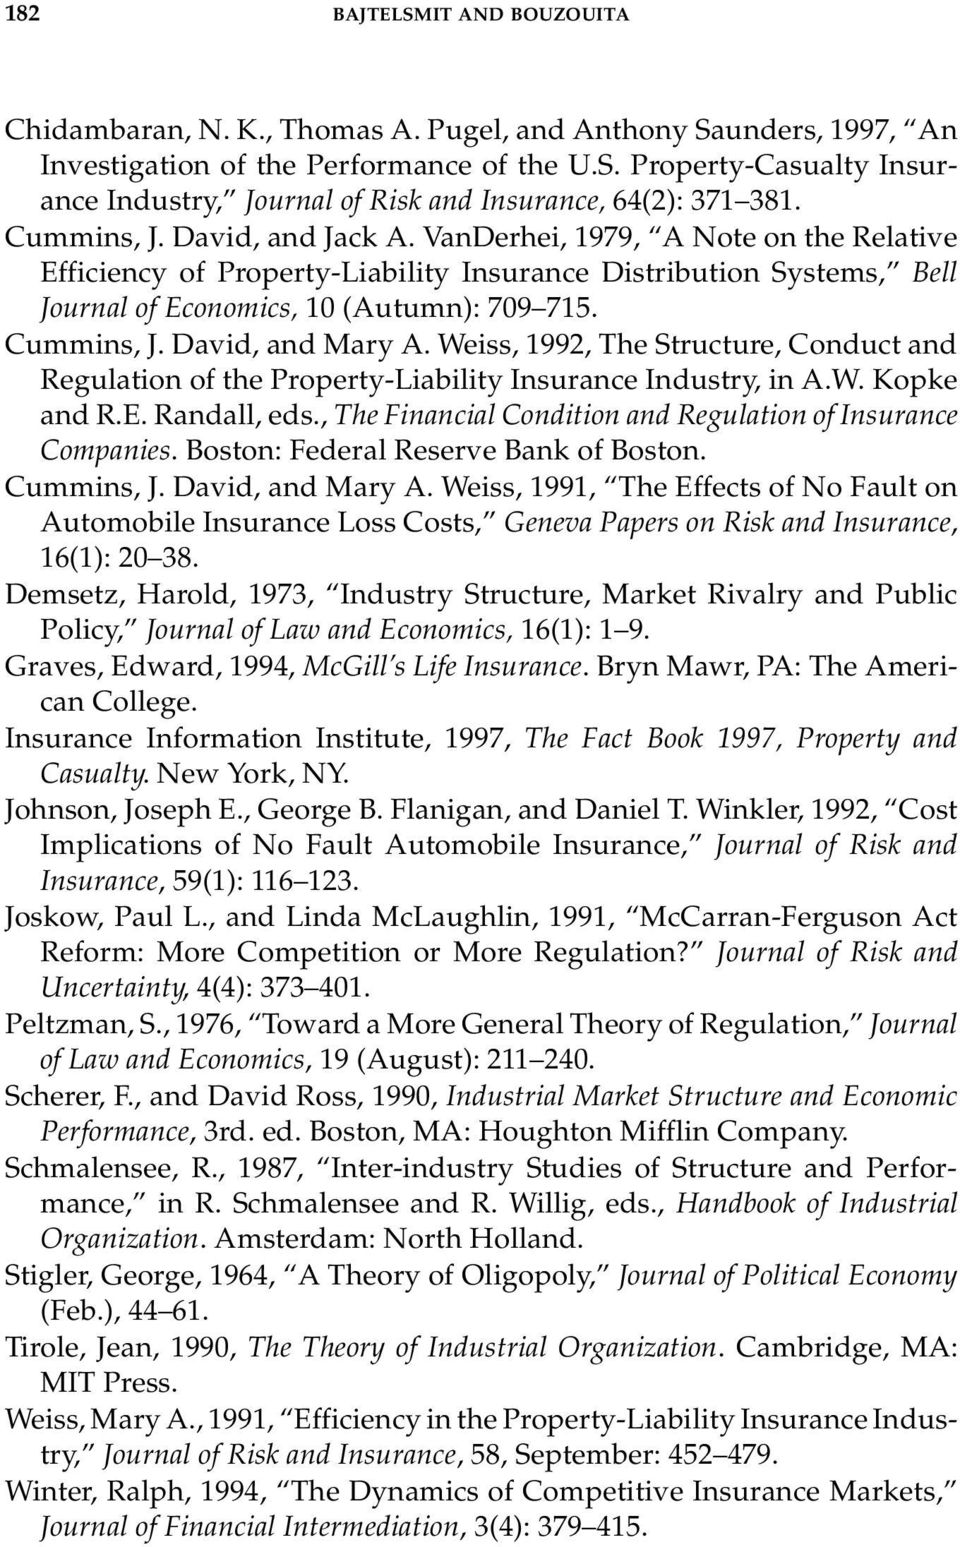 David, and Mary A. Weiss, 1992, The Structure, Conduct and Regulation of the Property-Liability Insurance Industry, in A.W. Kopke and R.E. Randall, eds.